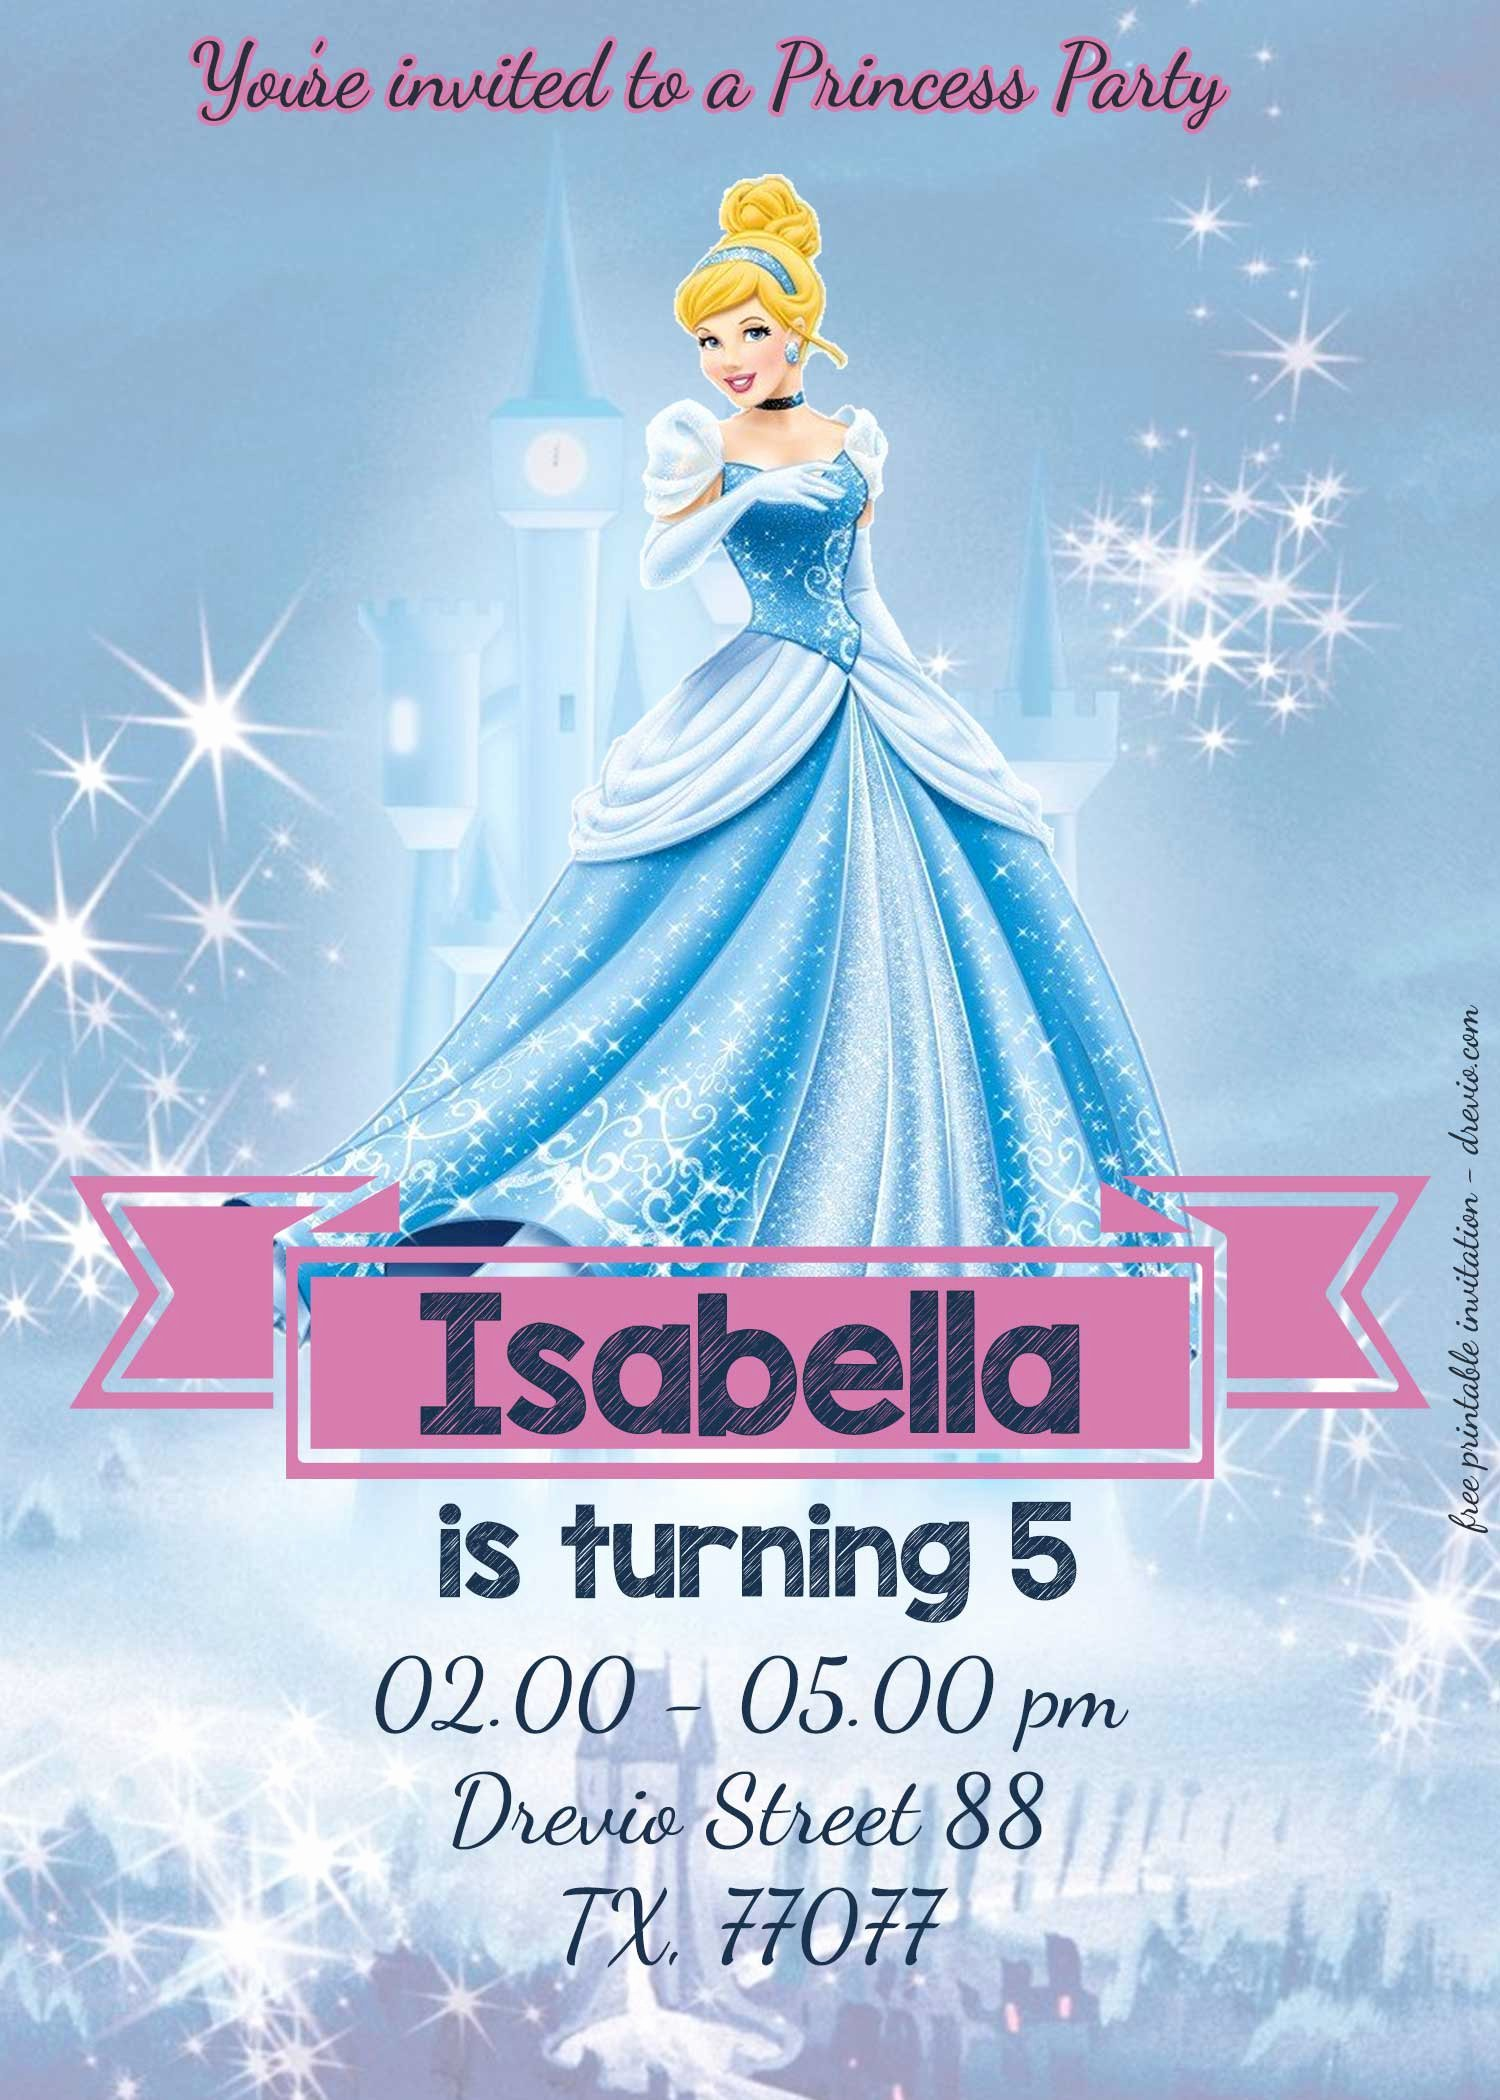 Disney Princess Invitation Template Beautiful Free Disney Princesses Birthday Invitation Templates